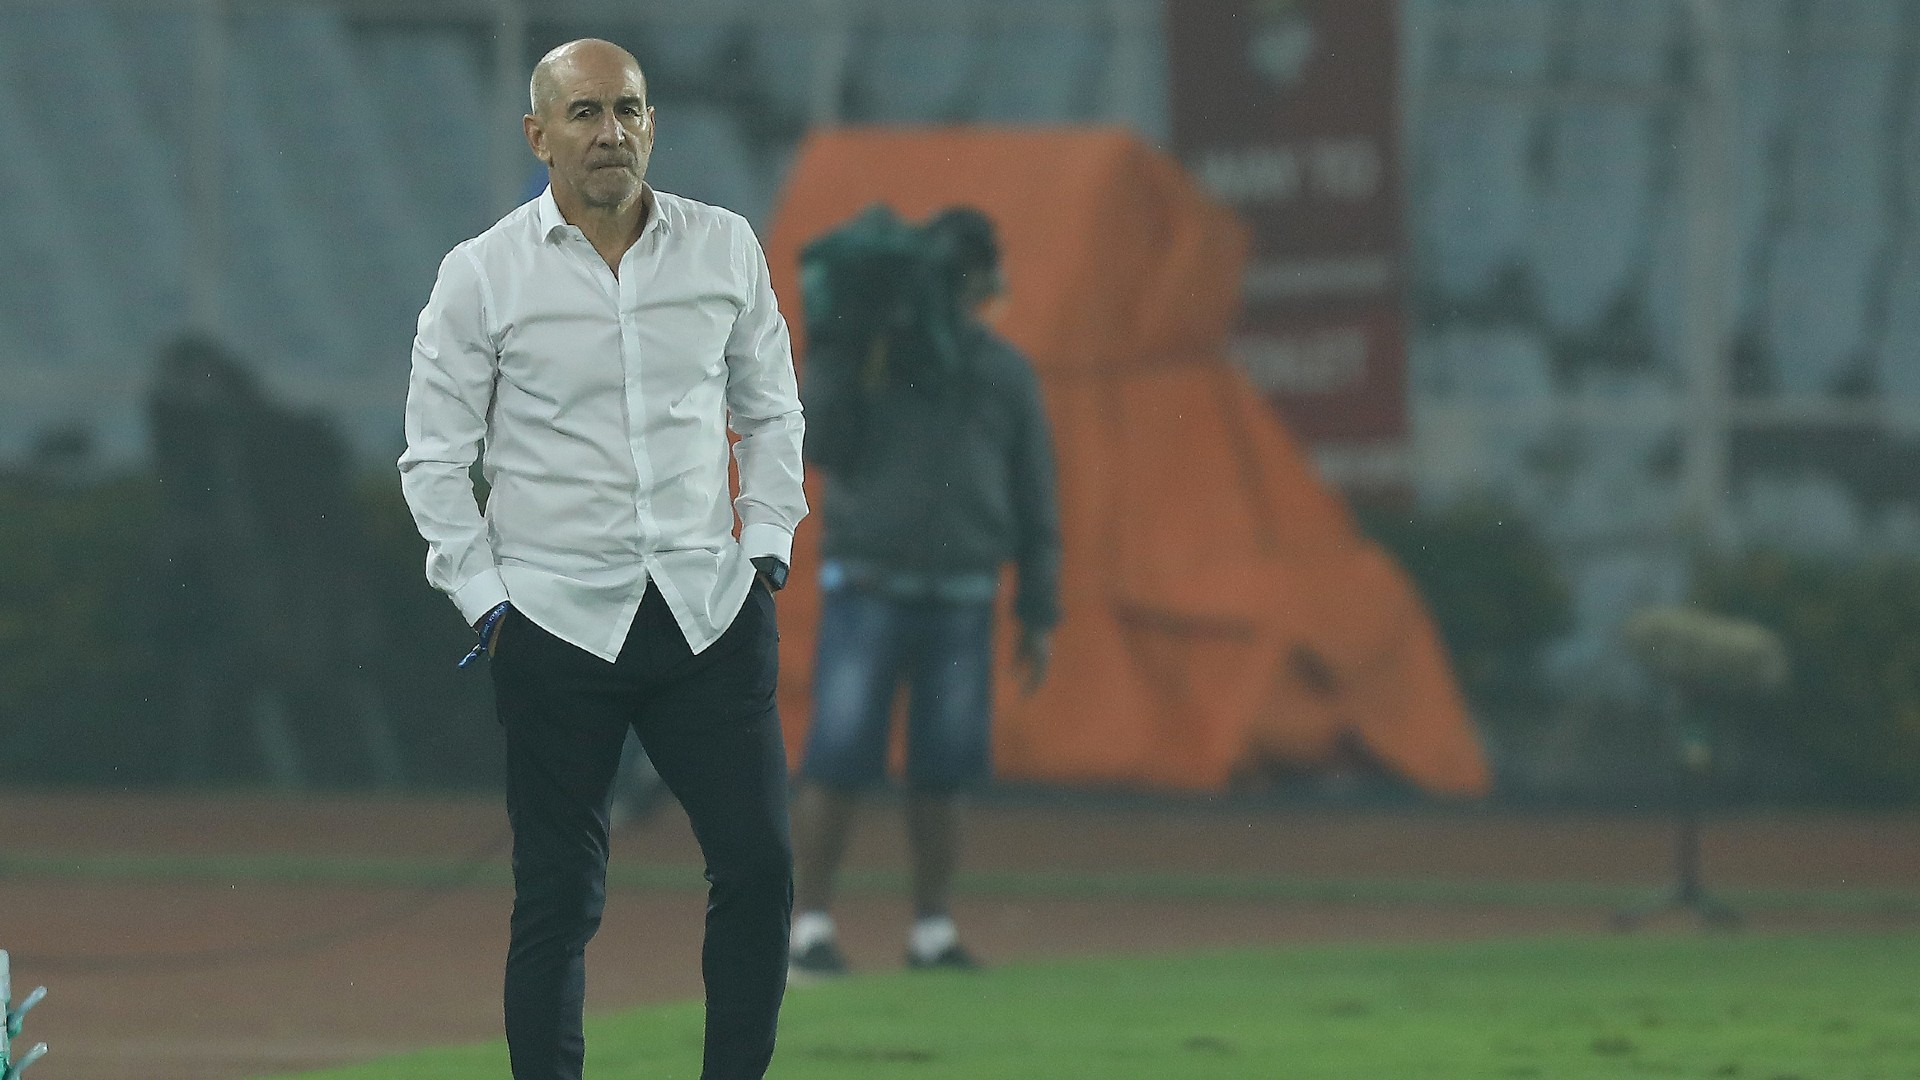 ATK Mohun Bagan's Spanish contingent along with coach Antonio Habas set sail for India